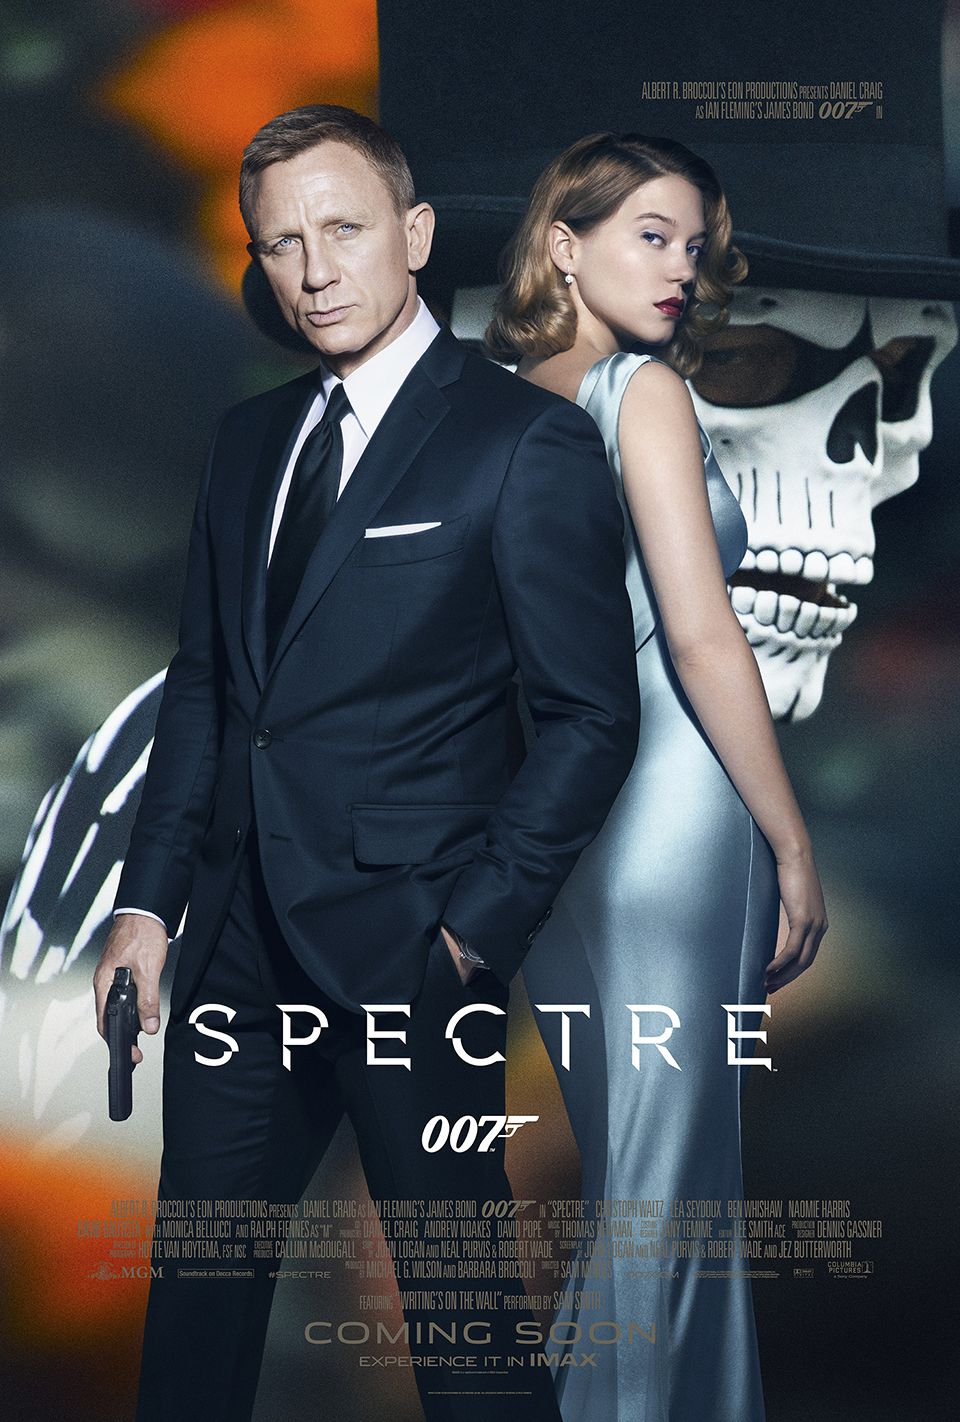 ab445dc932b The Official James Bond 007 Website | NEW SPECTRE ARTWORK | Bond ...